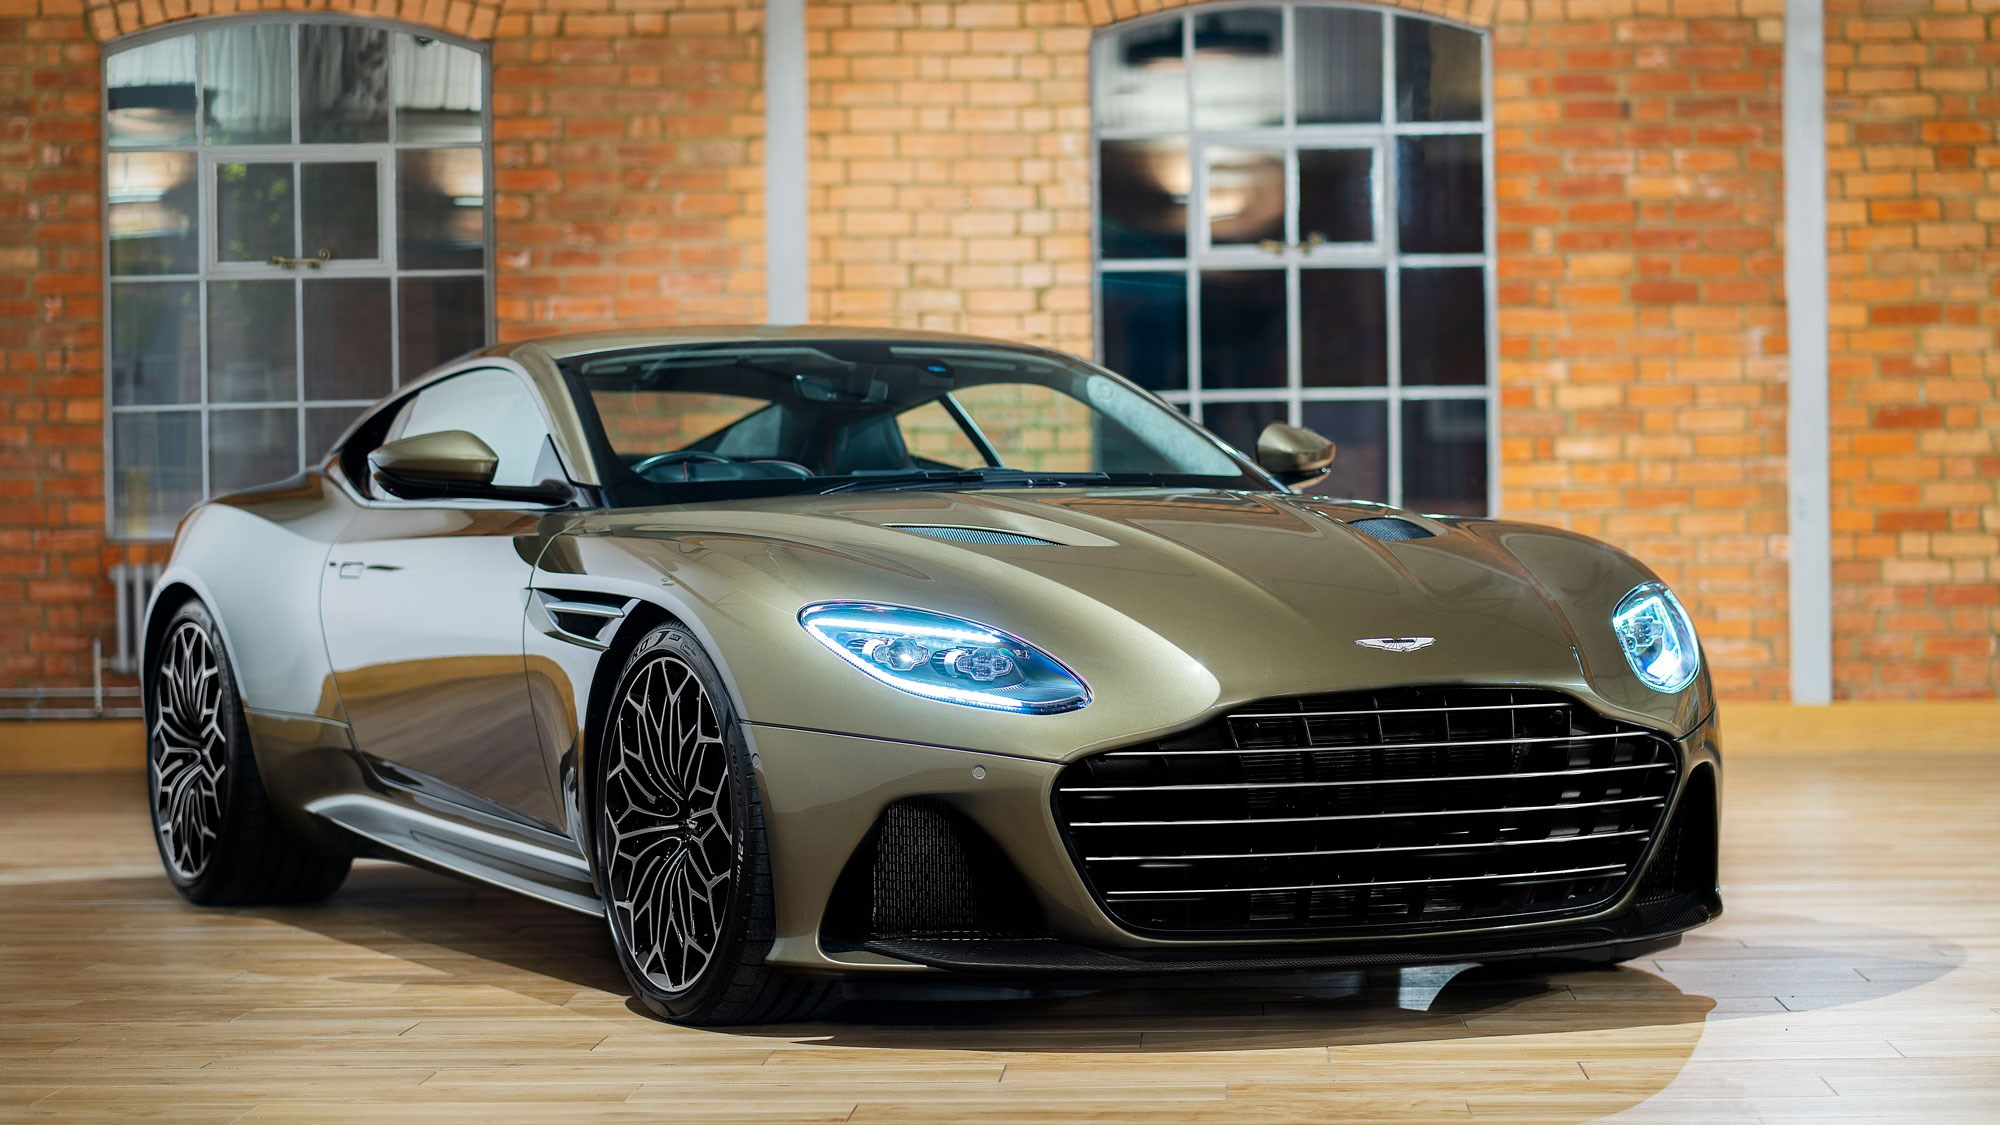 Image result for DBS Superleggera Aston Martin Bond